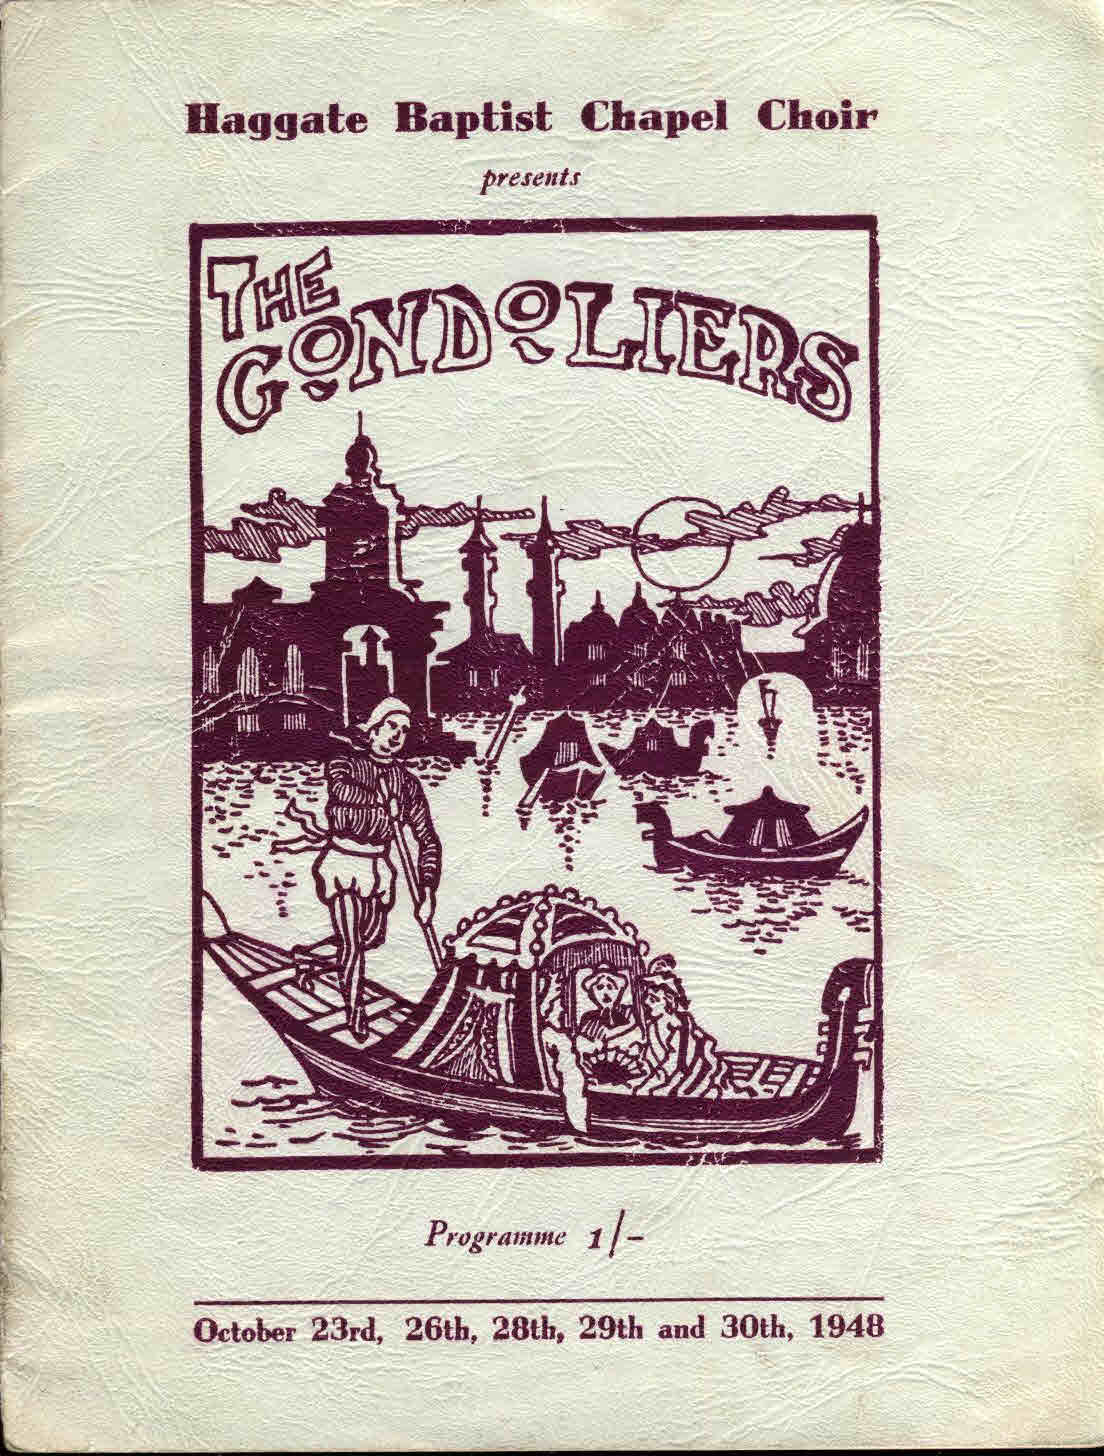 1948 Haggate Baptisit Chapel Choir THE GONDOLIERS theatre programme refS7-box1 19cm x 25 cm approx. This is a pre-owned product in fairly good condition for it's age. Some wear